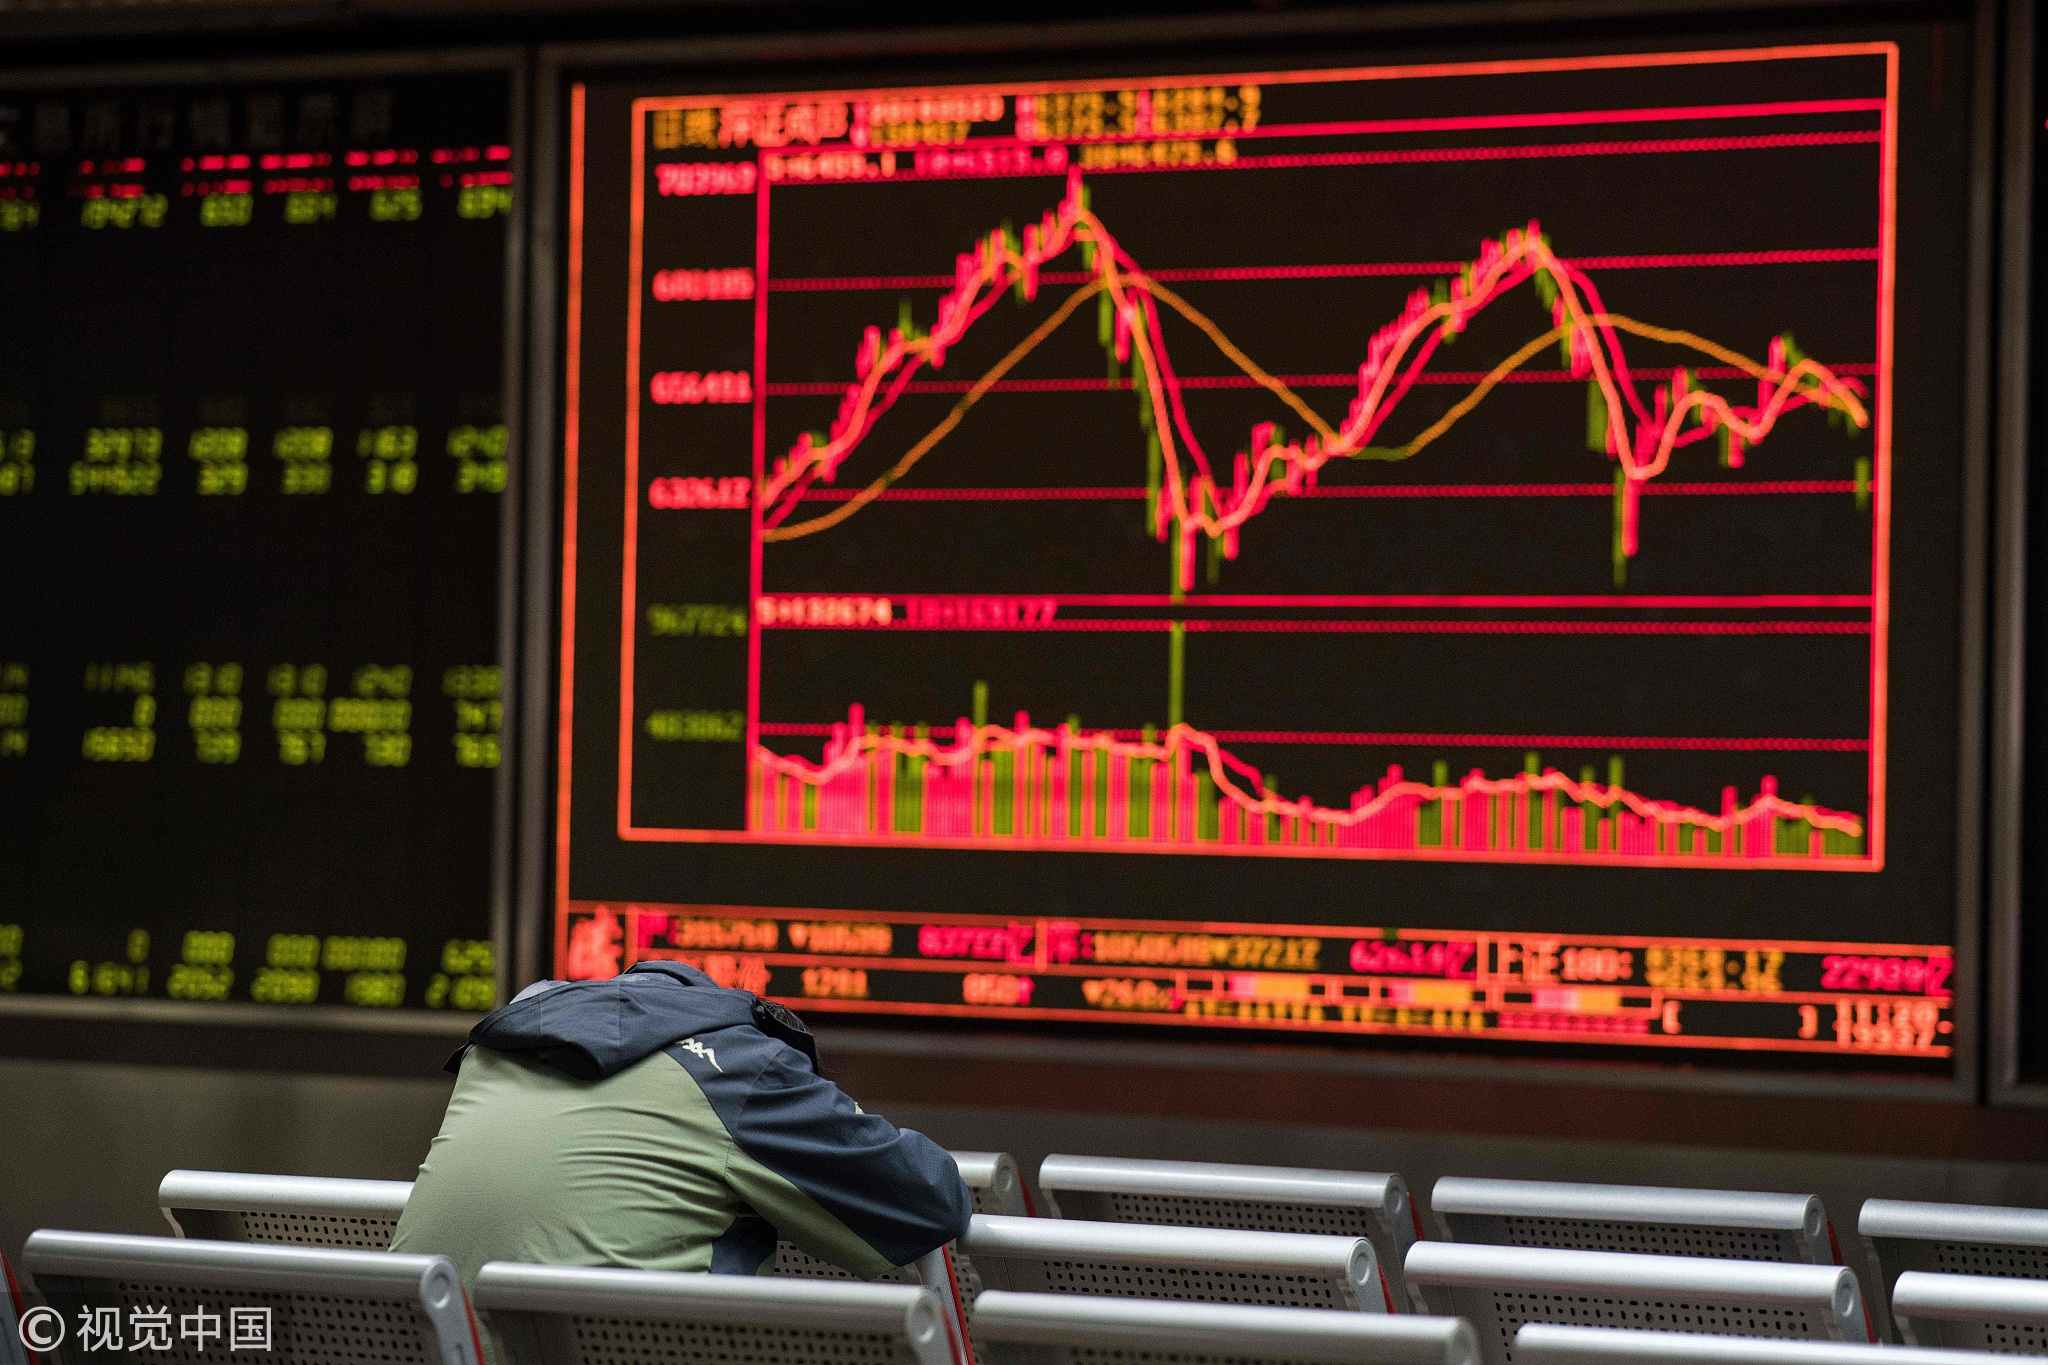 A man rests as he keeps an eye on stock price movements displayed on a screen at a securities company in Beijing on March 23, 2018. [Photo: VCG]